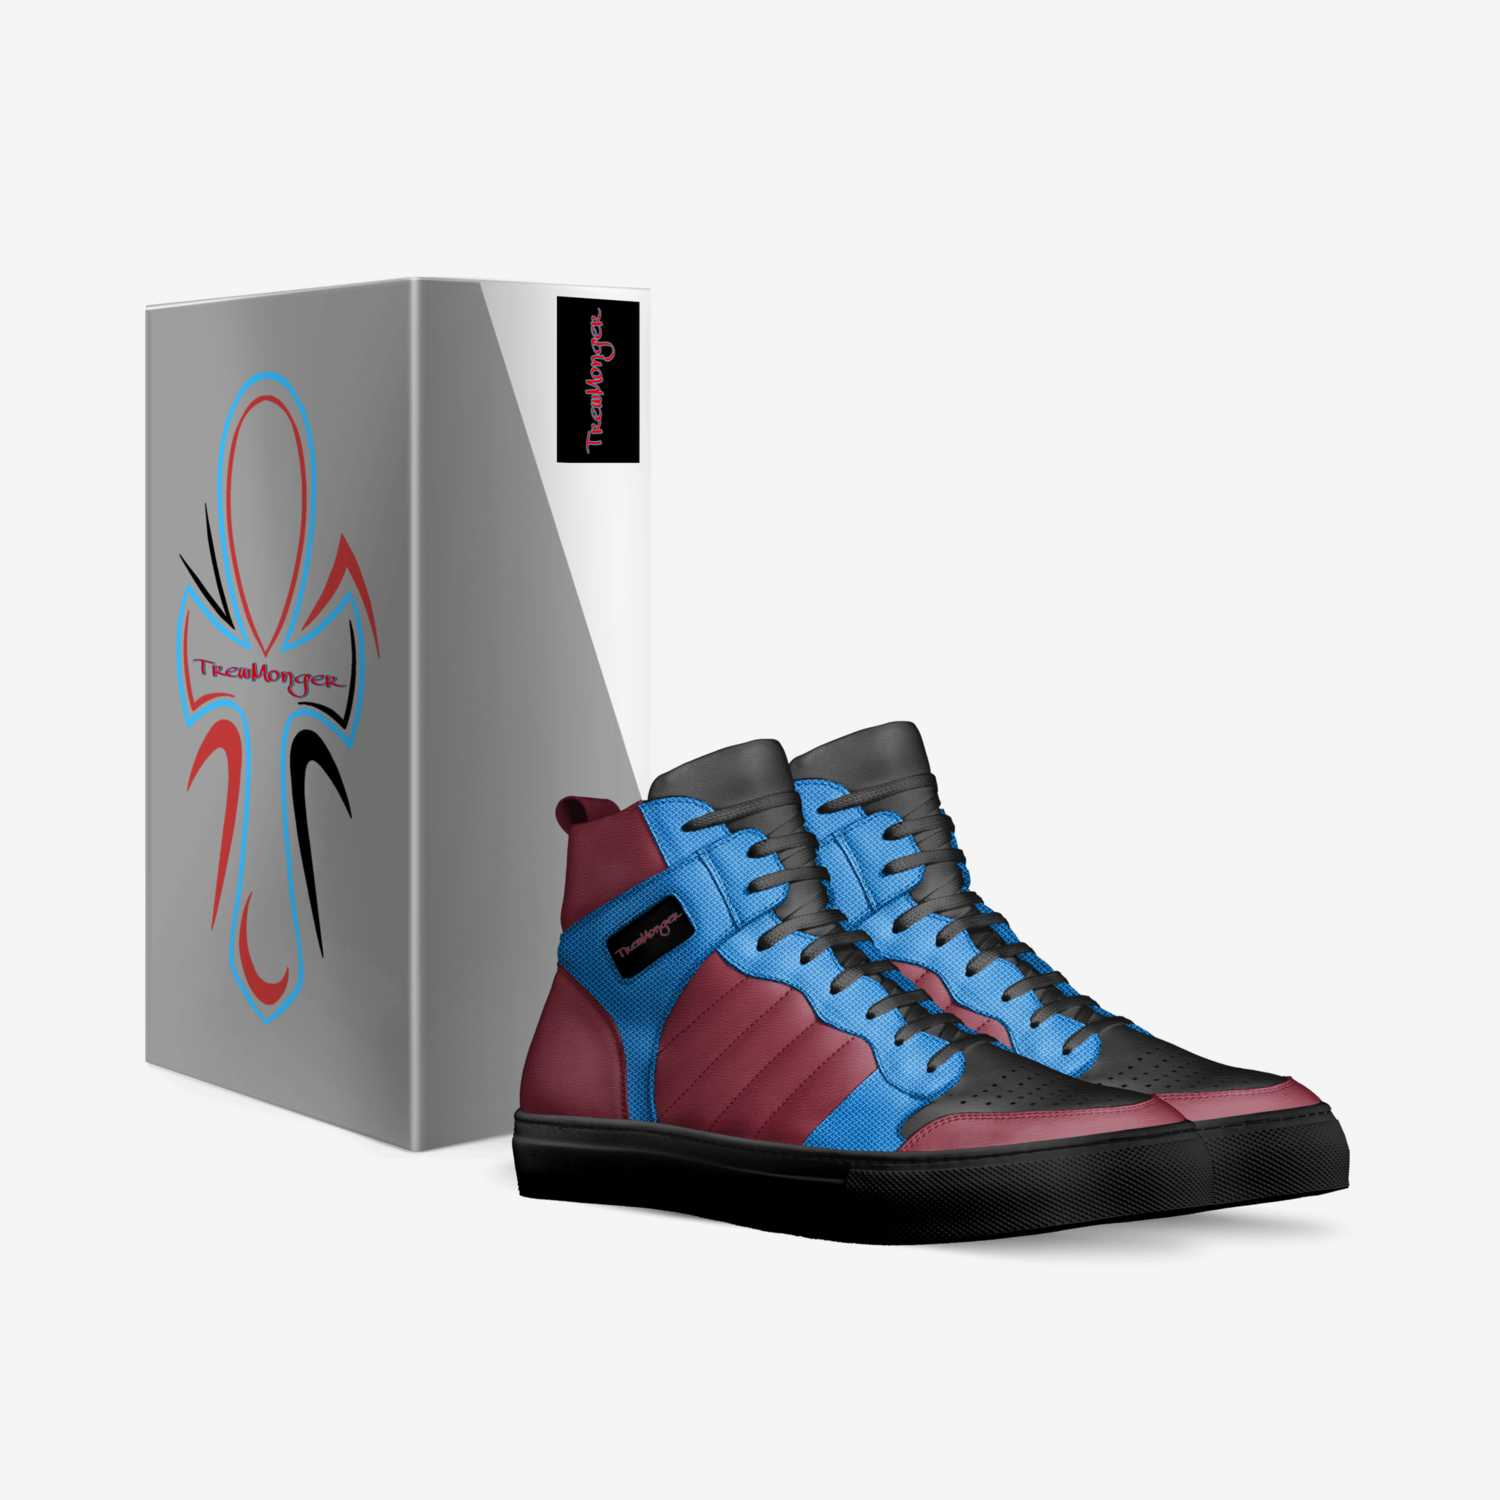 Legacy G1 V2 custom made in Italy shoes by TrewMonger Brand | Box view